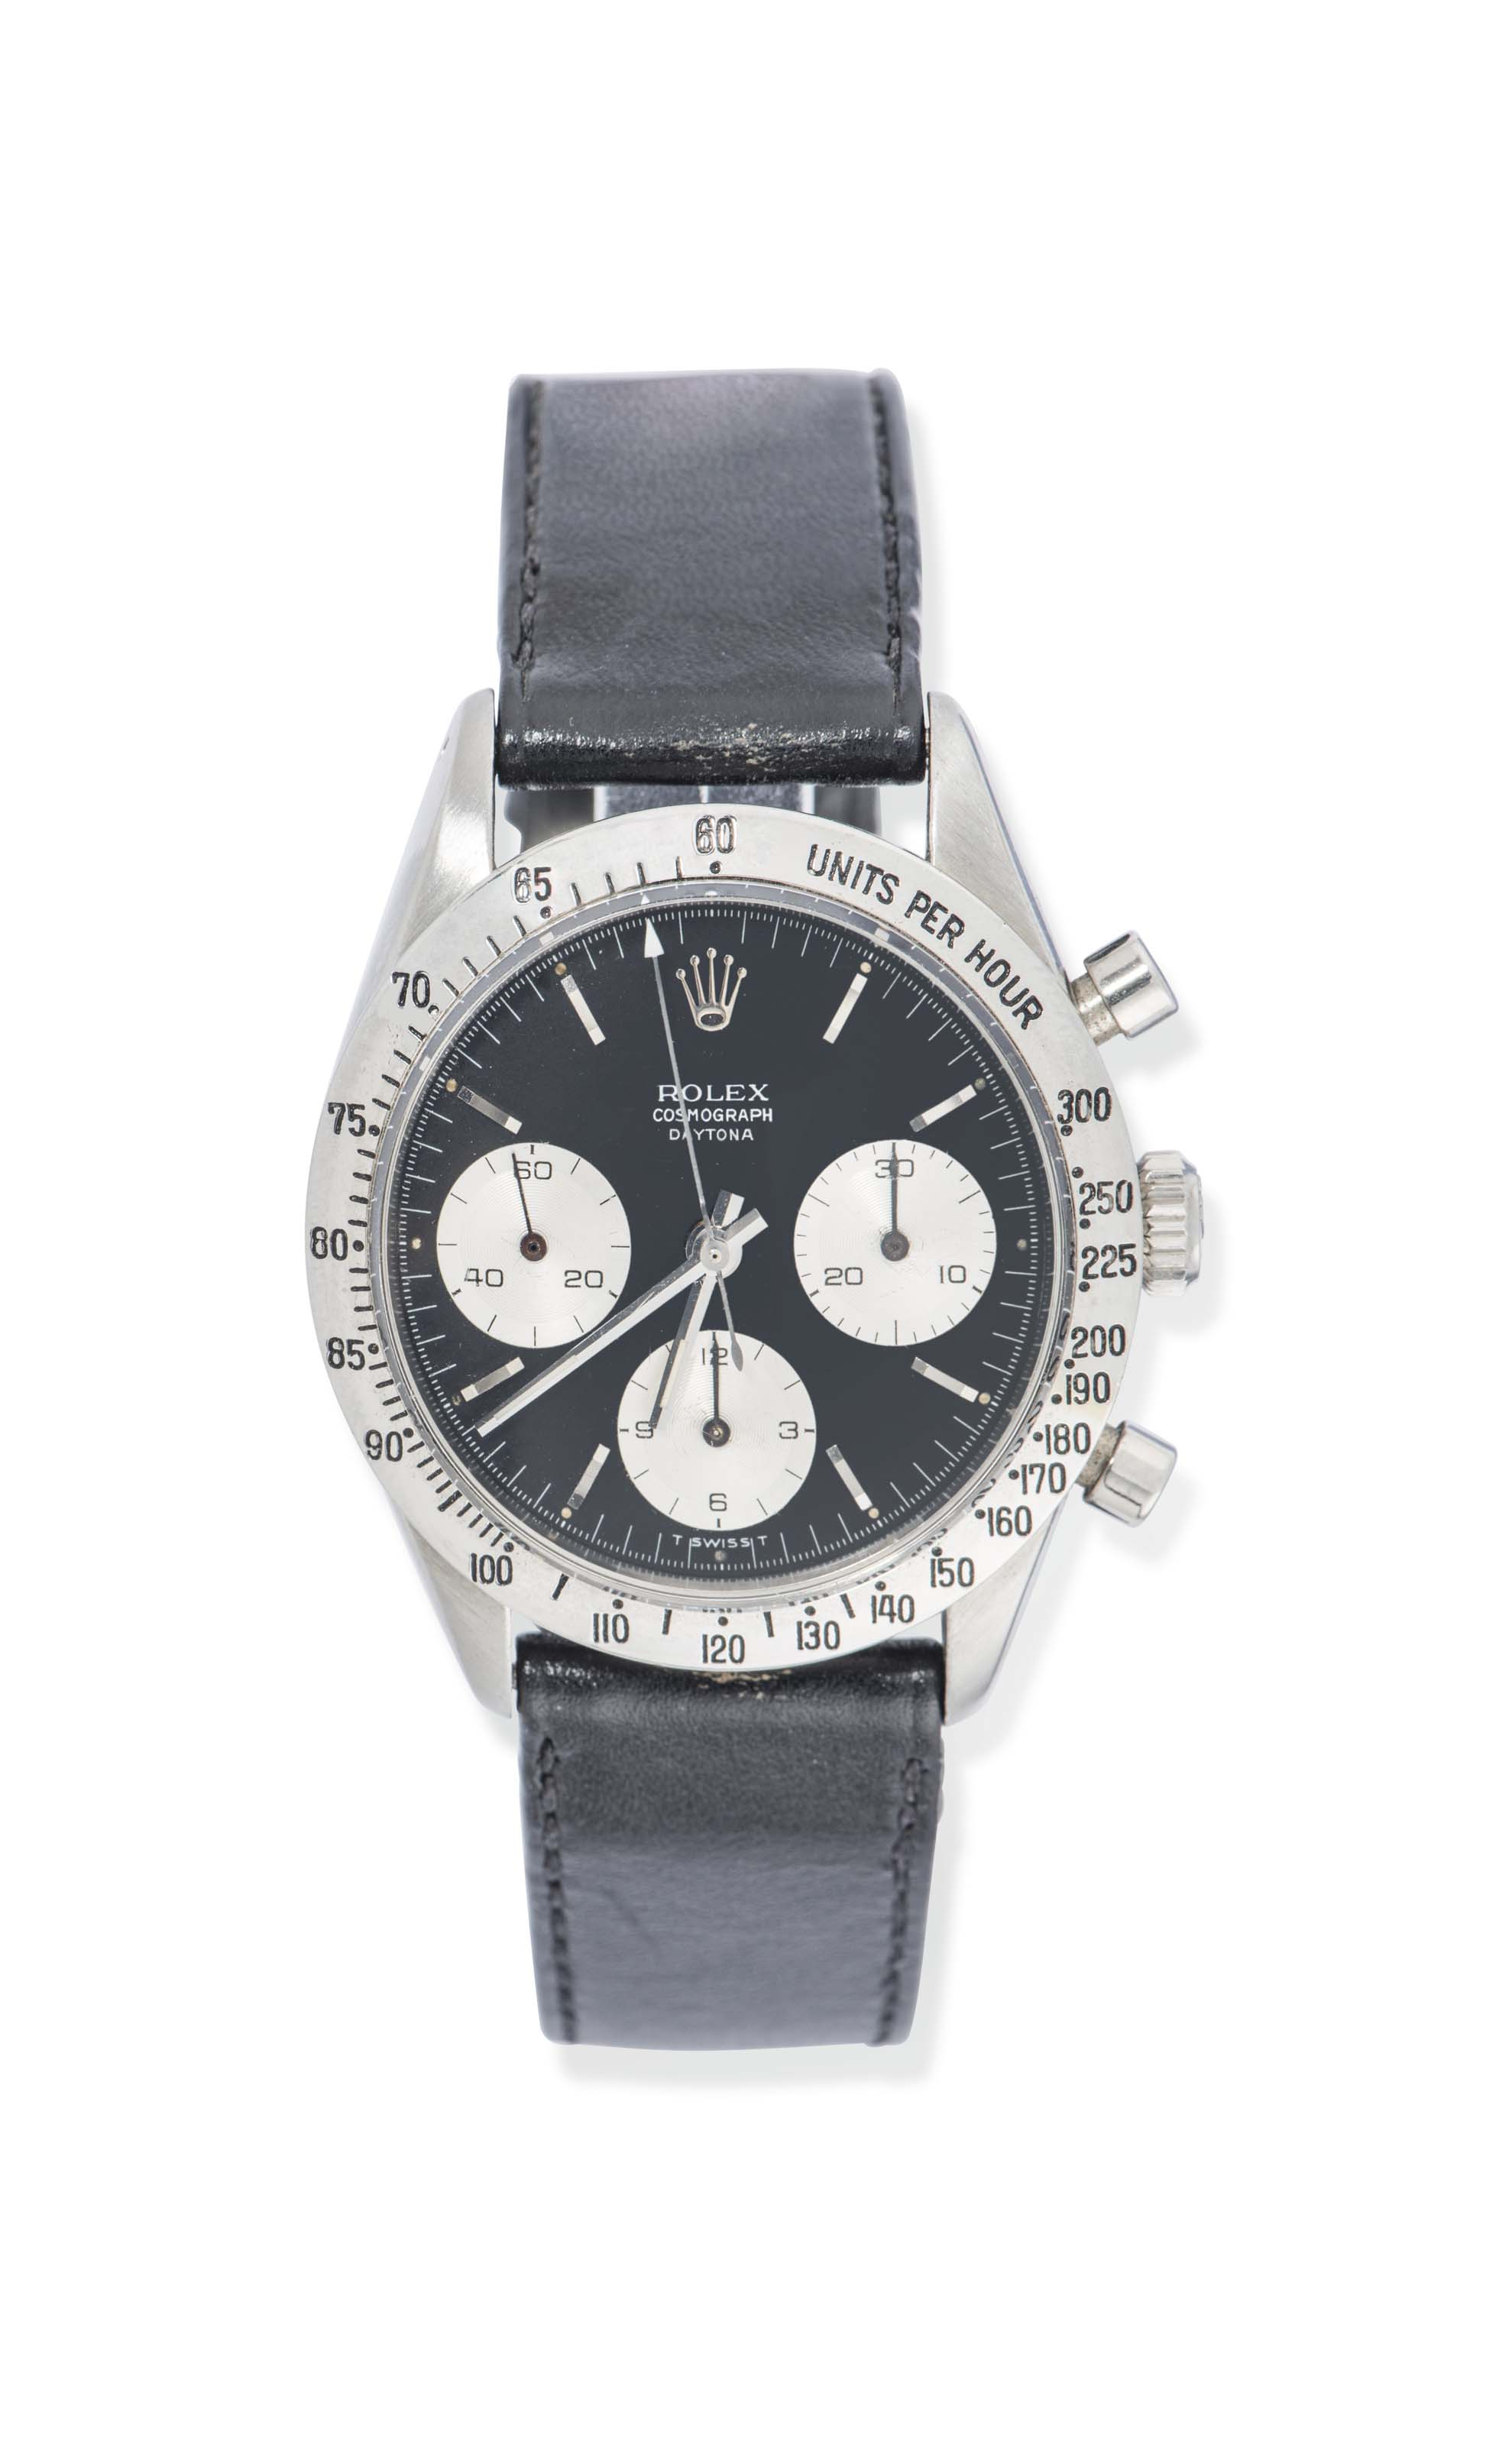 A STAINLESS STEEL 'COSMOGRAPH DAYTONA' CHRONOGRAPH WRISTWATCH, BY ROLEX REF. 6239